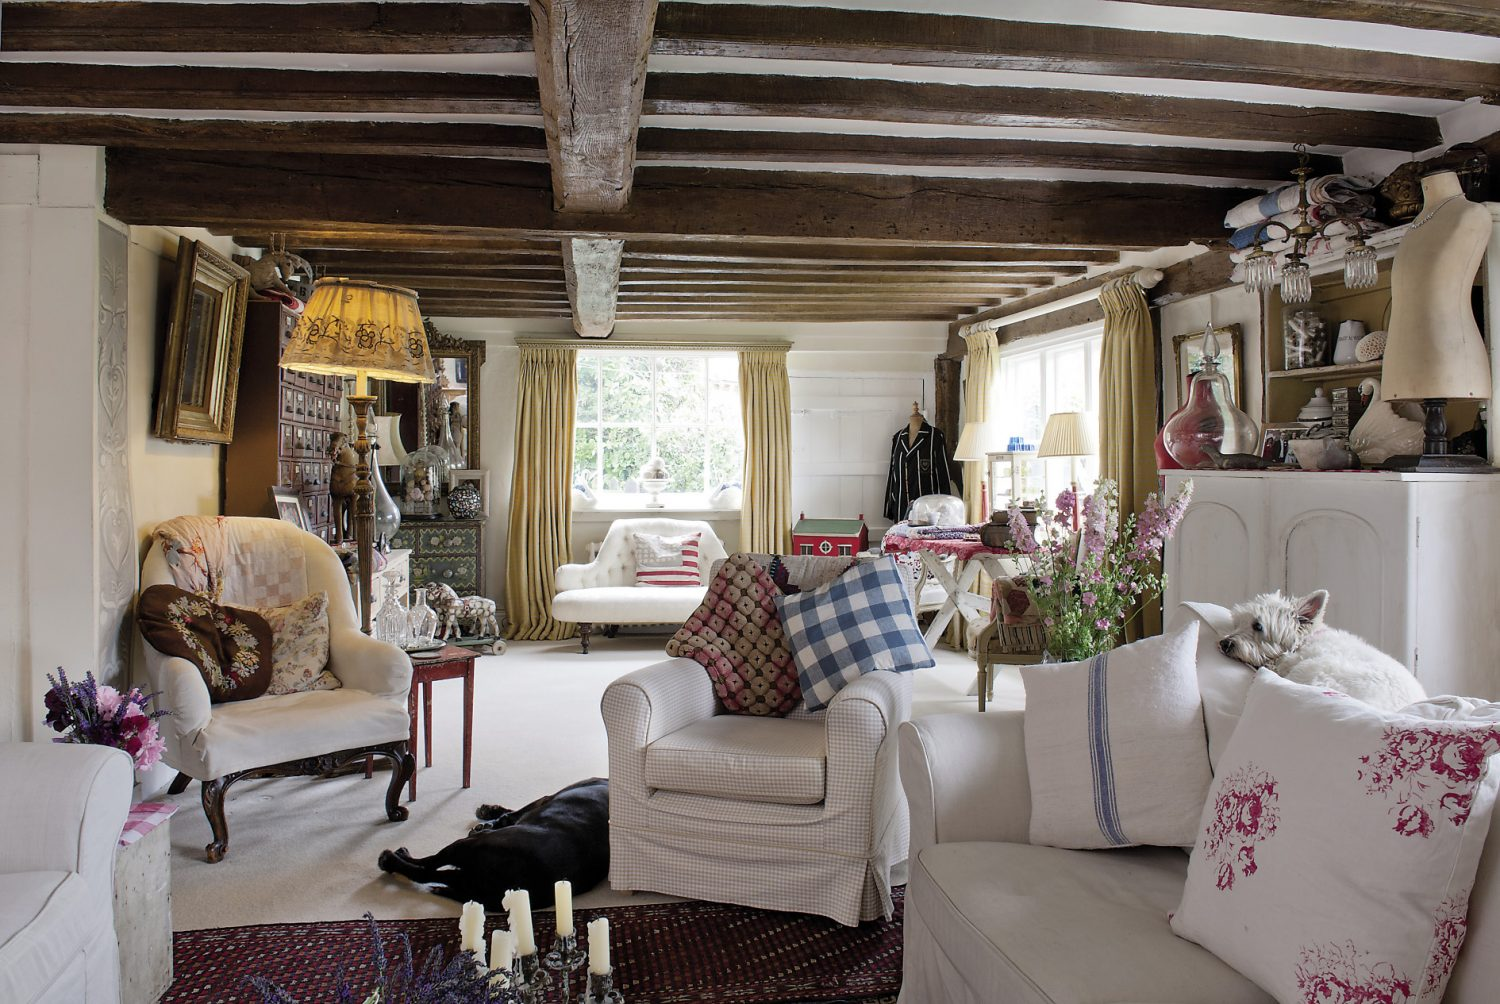 The sitting room. Throughout the house, Madeline has managed to create carefully contrived arrangements and collections of quirky objects: everything from shoes to shopping bags